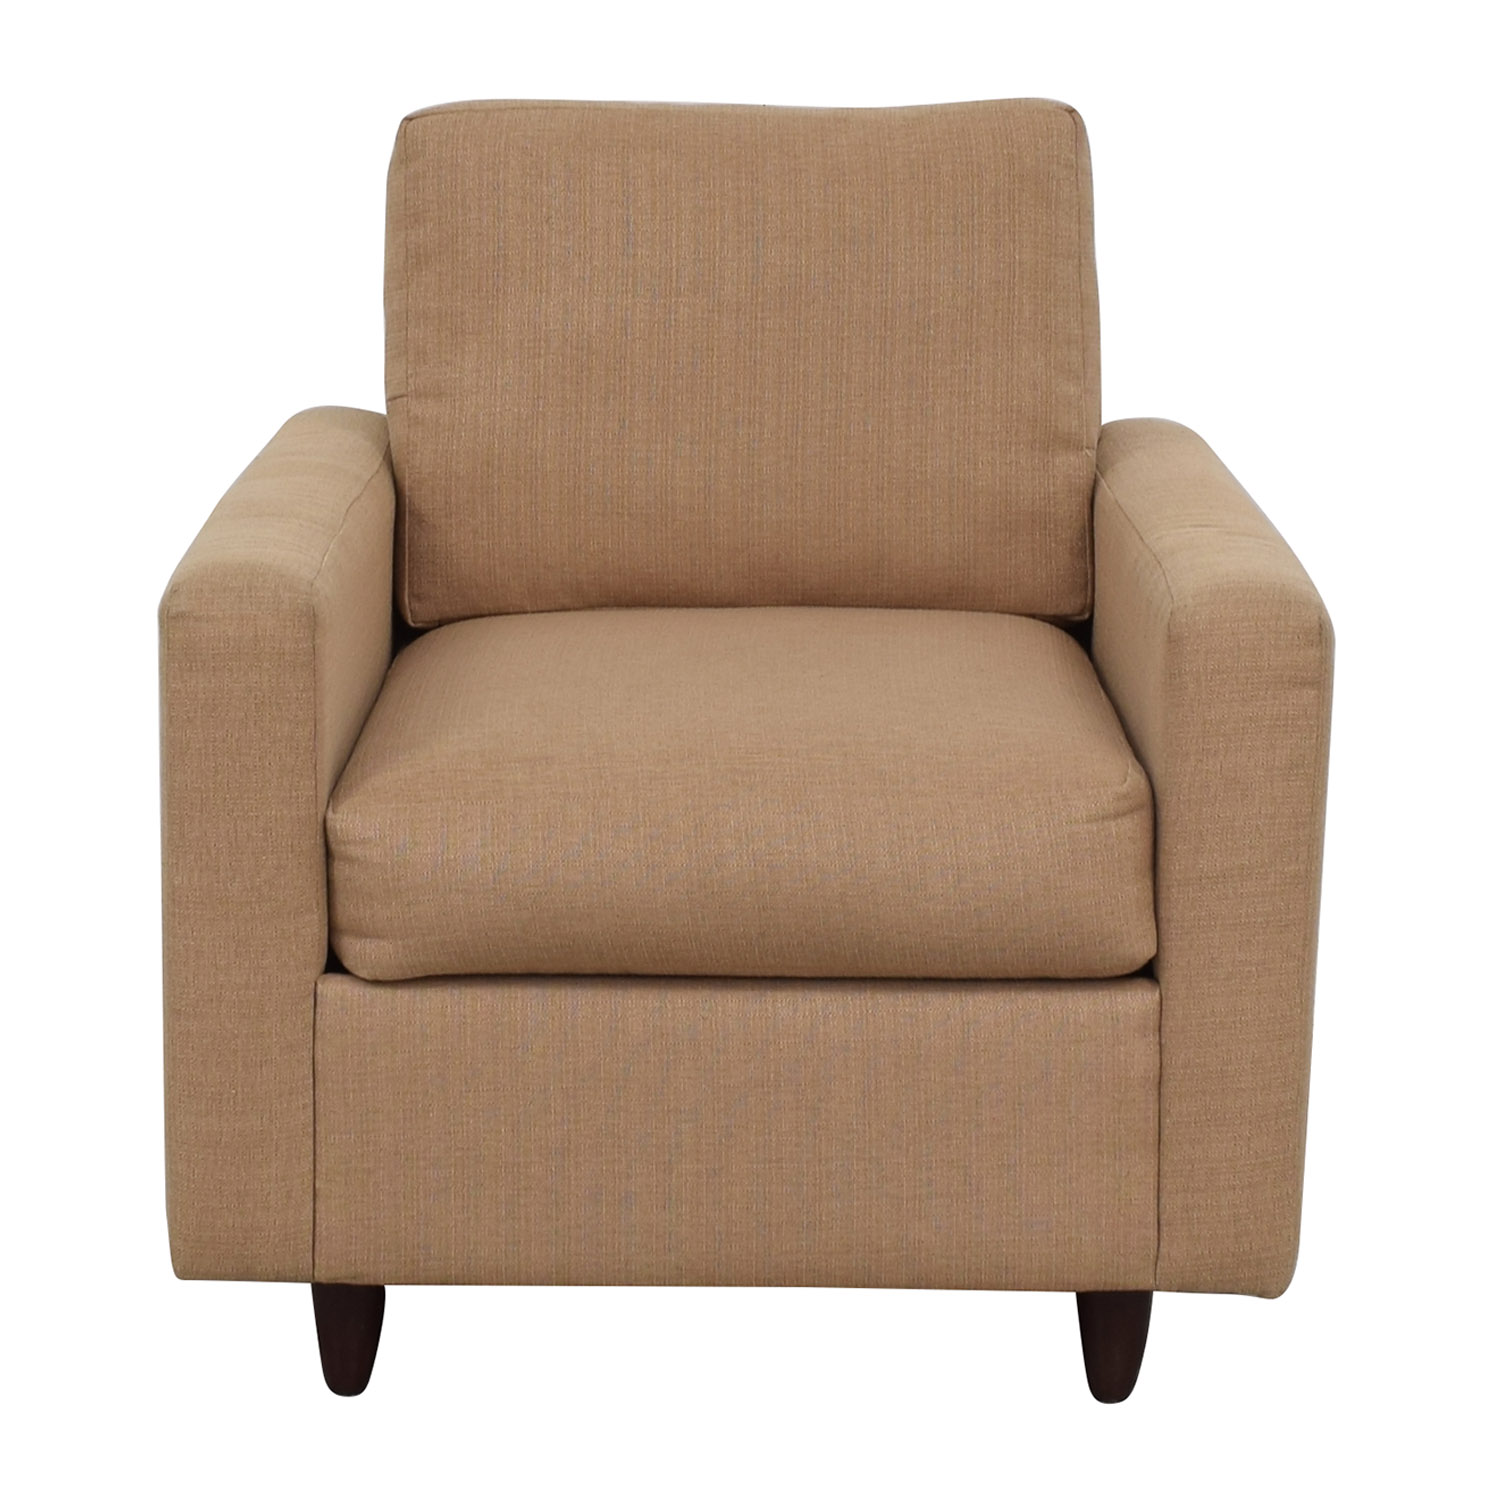 shop Jensen-Lewis Accent Chair Jensen-Lewis